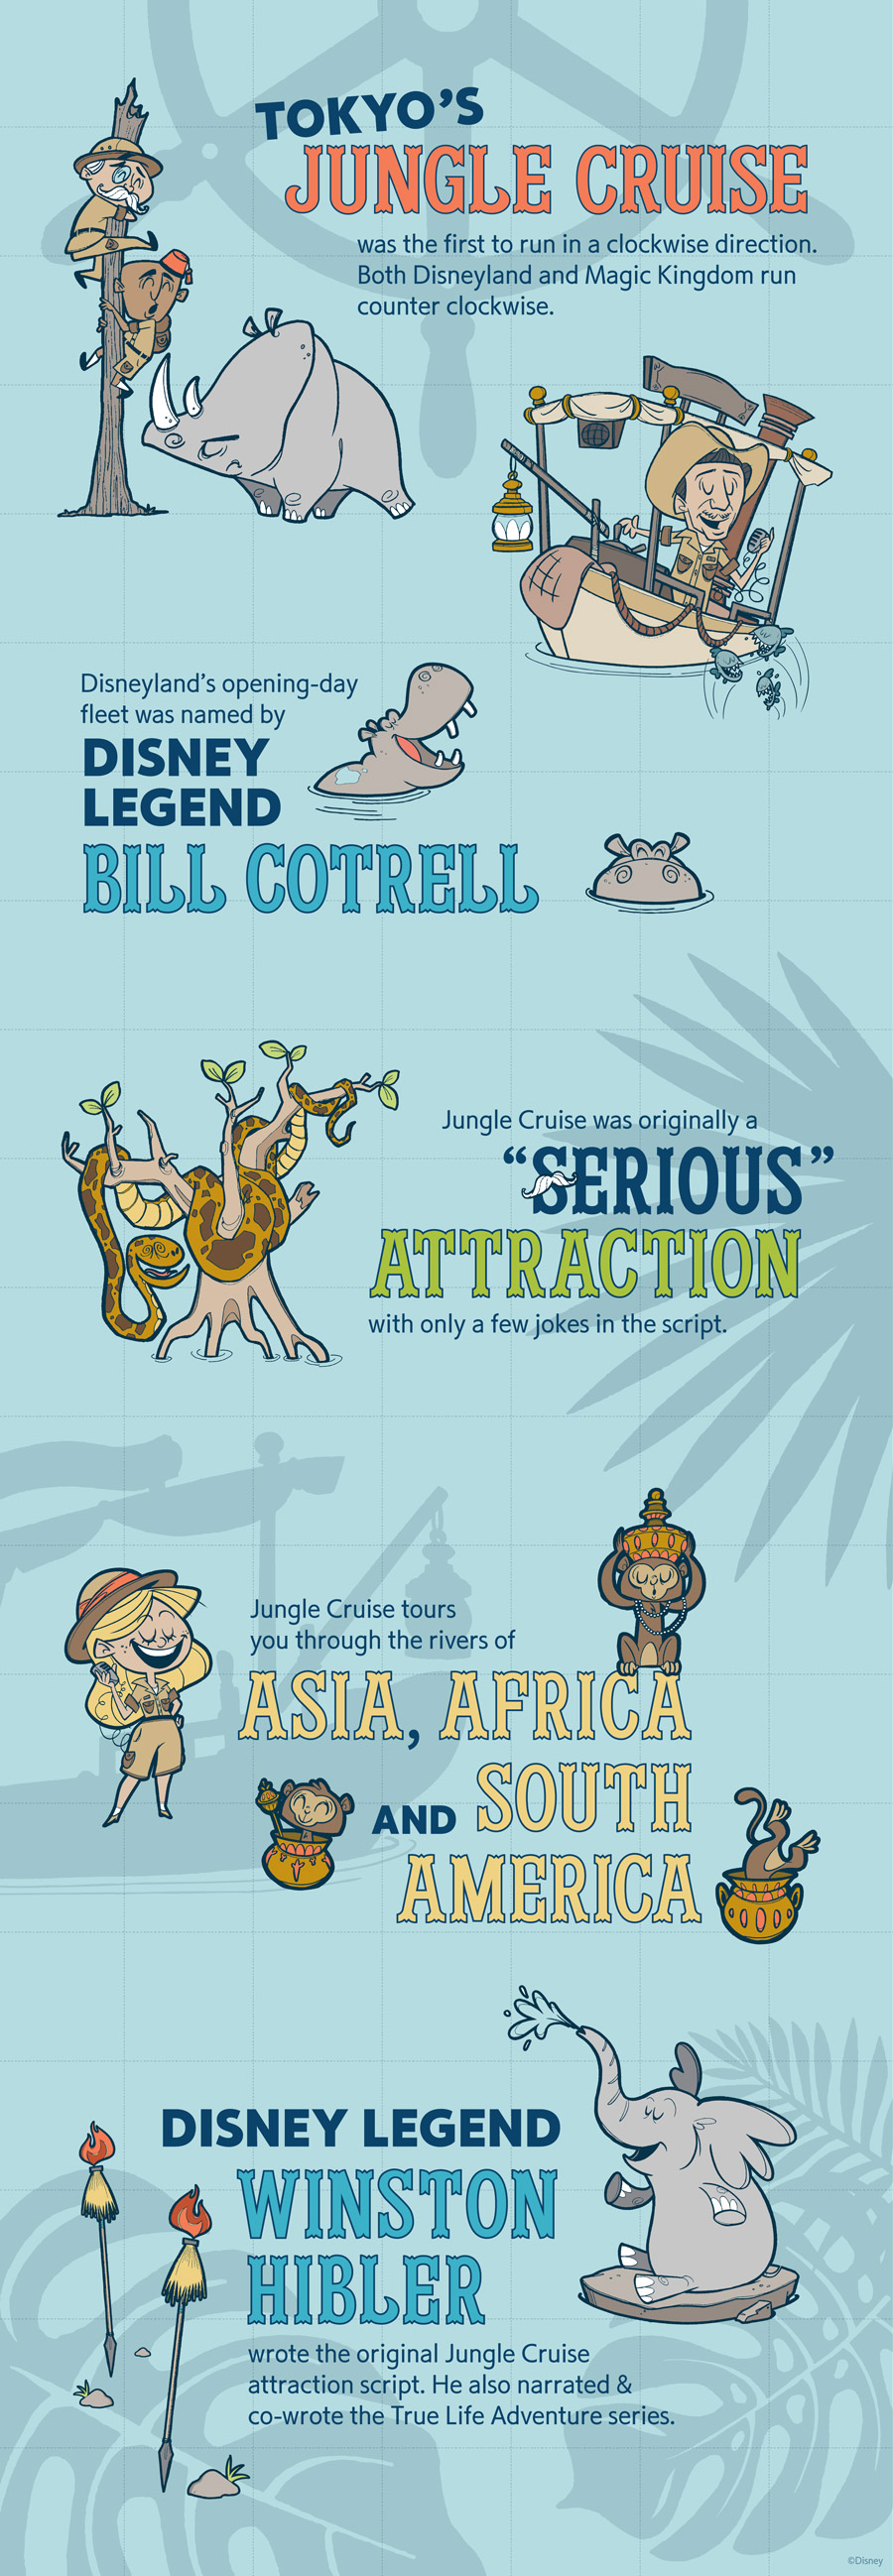 """5 Fun Facts to Celebrate Release of the Official """"Jungle Cruise"""" Trailer"""